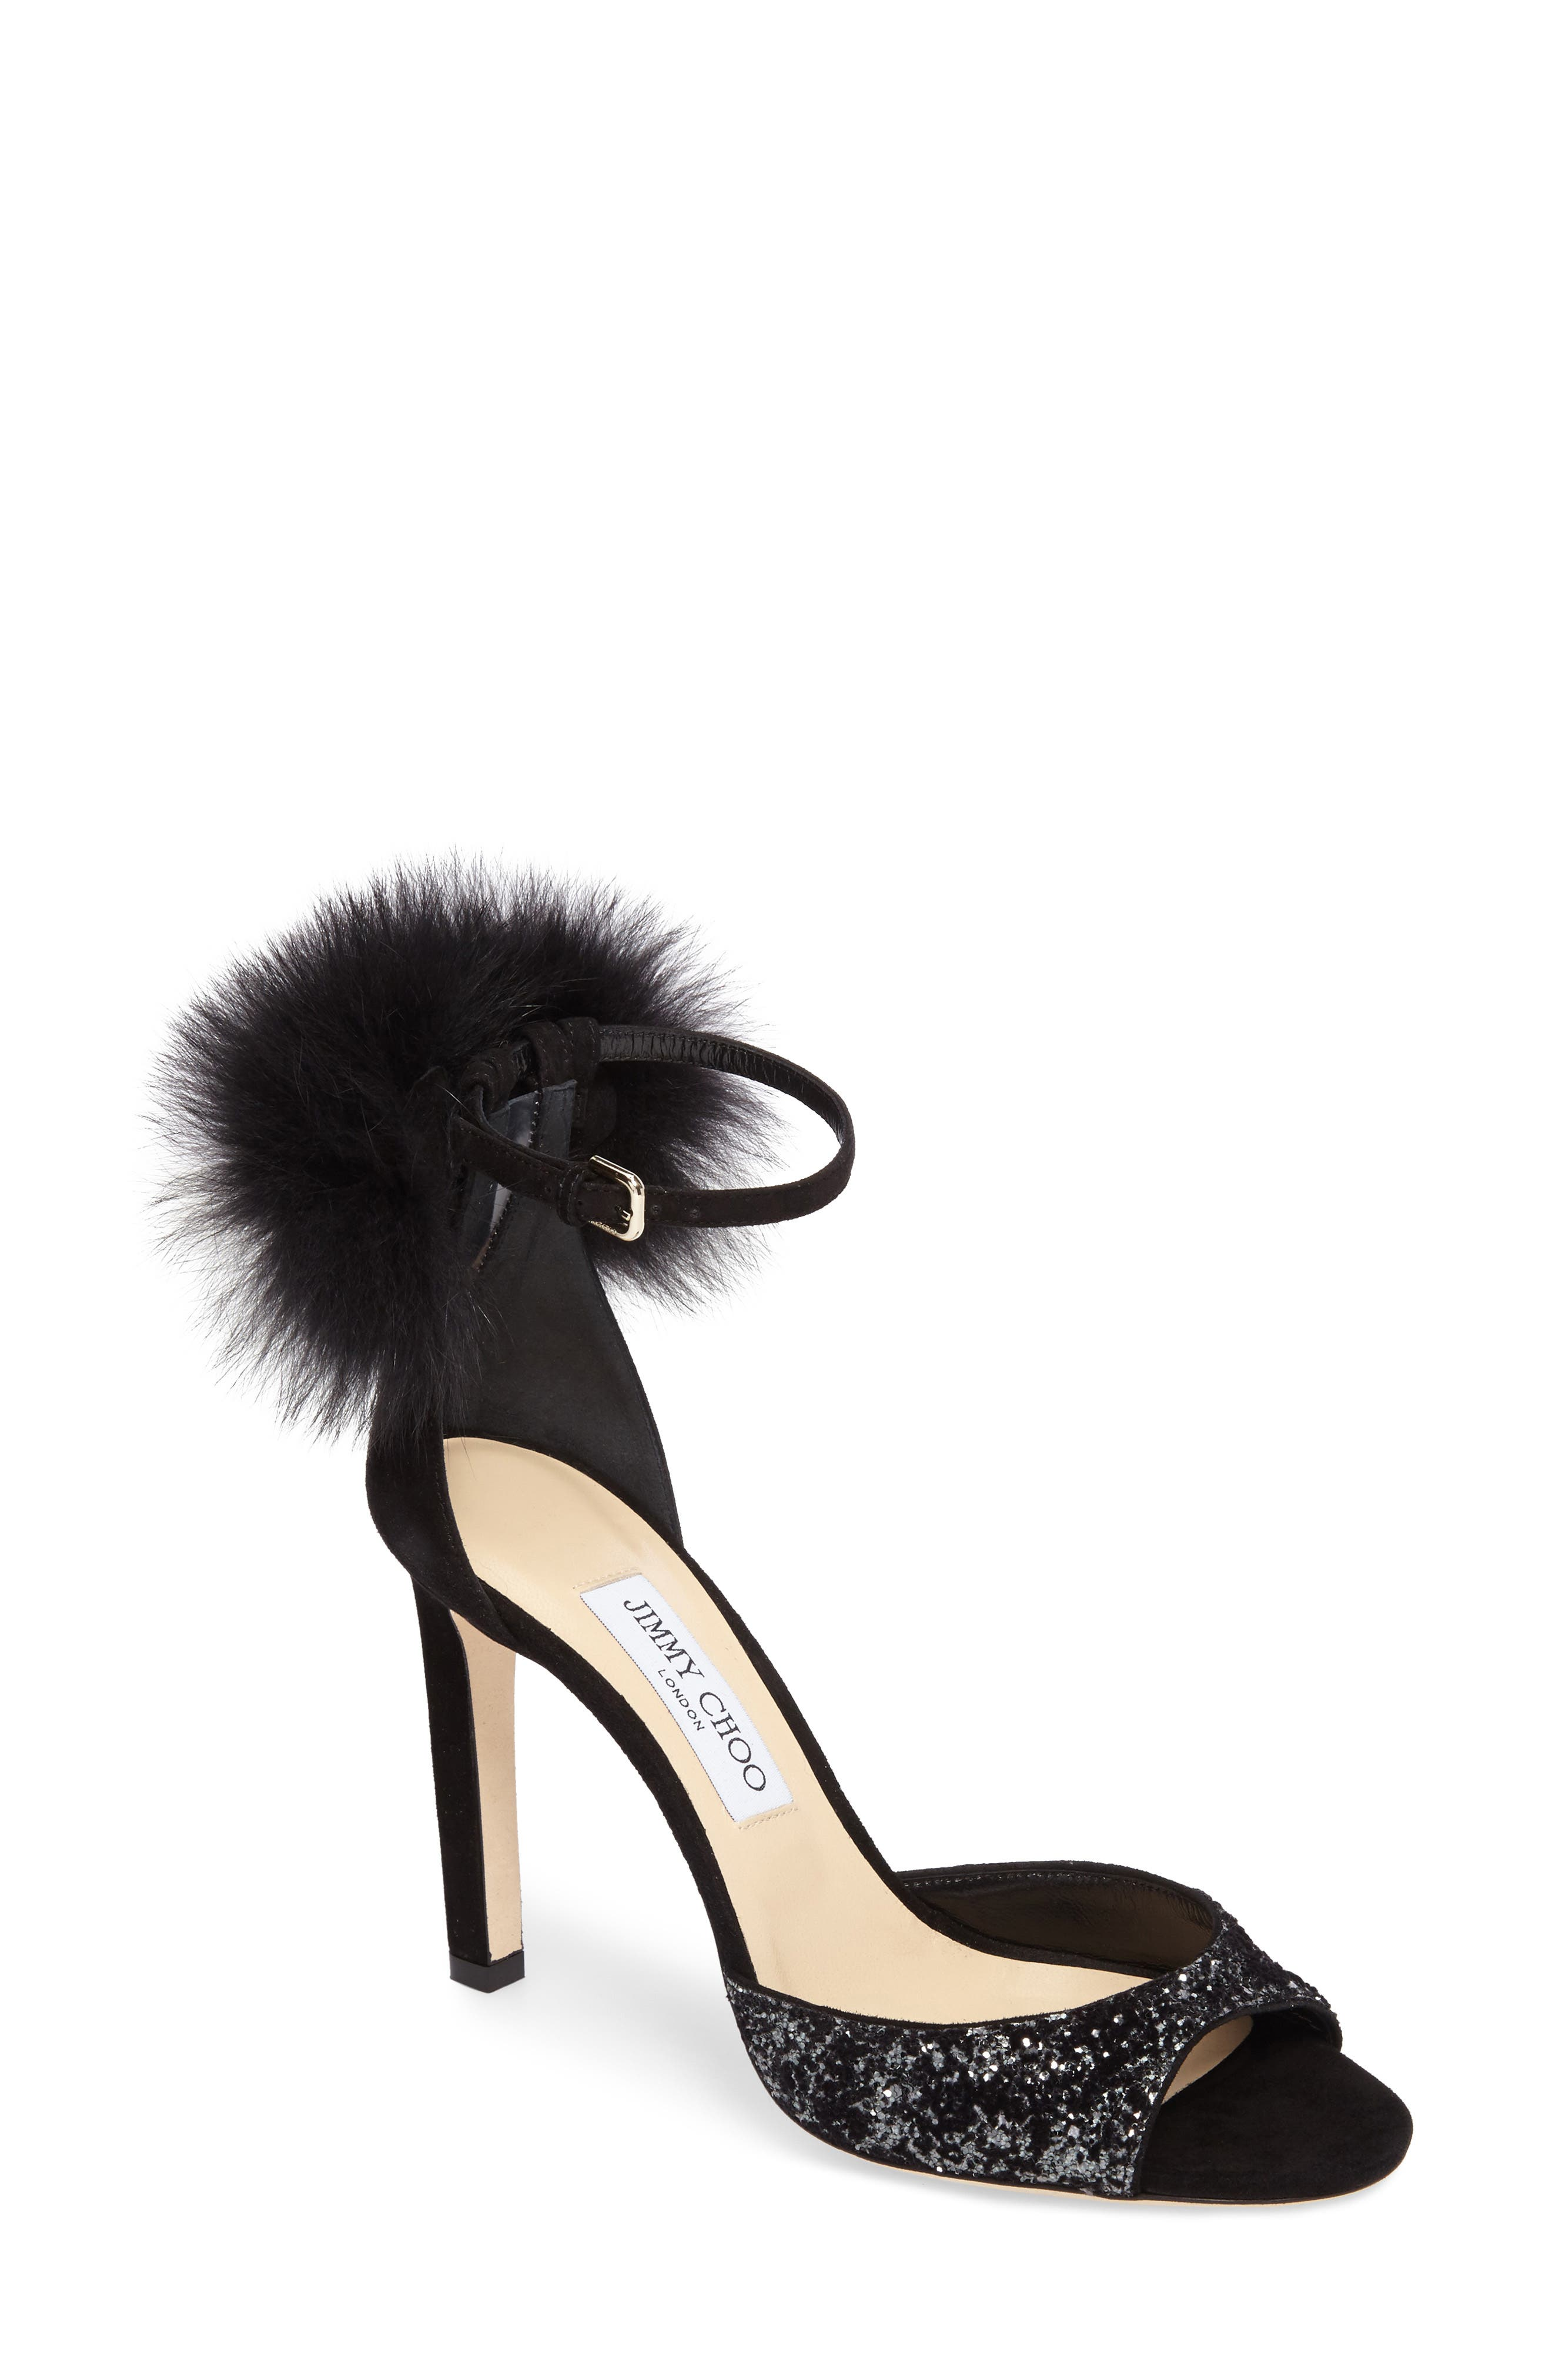 Suri Genuine Fox Fur Sandal,                             Main thumbnail 1, color,                             Anthracite/ Black/ Black